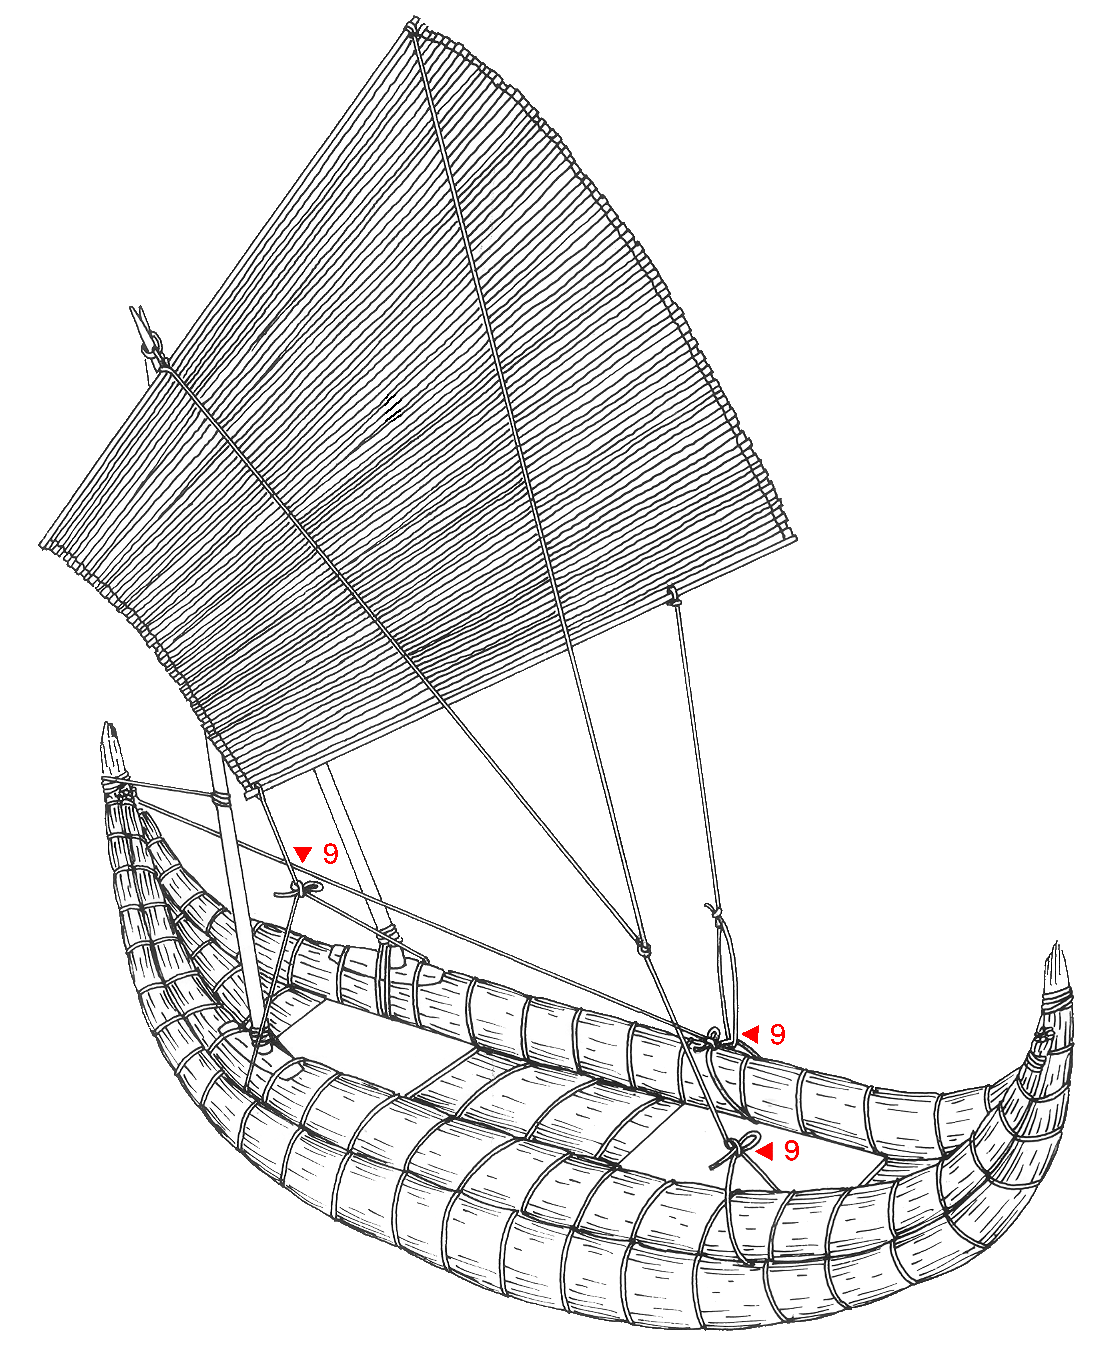 Raft drawing boat. Missing inca knowledge an